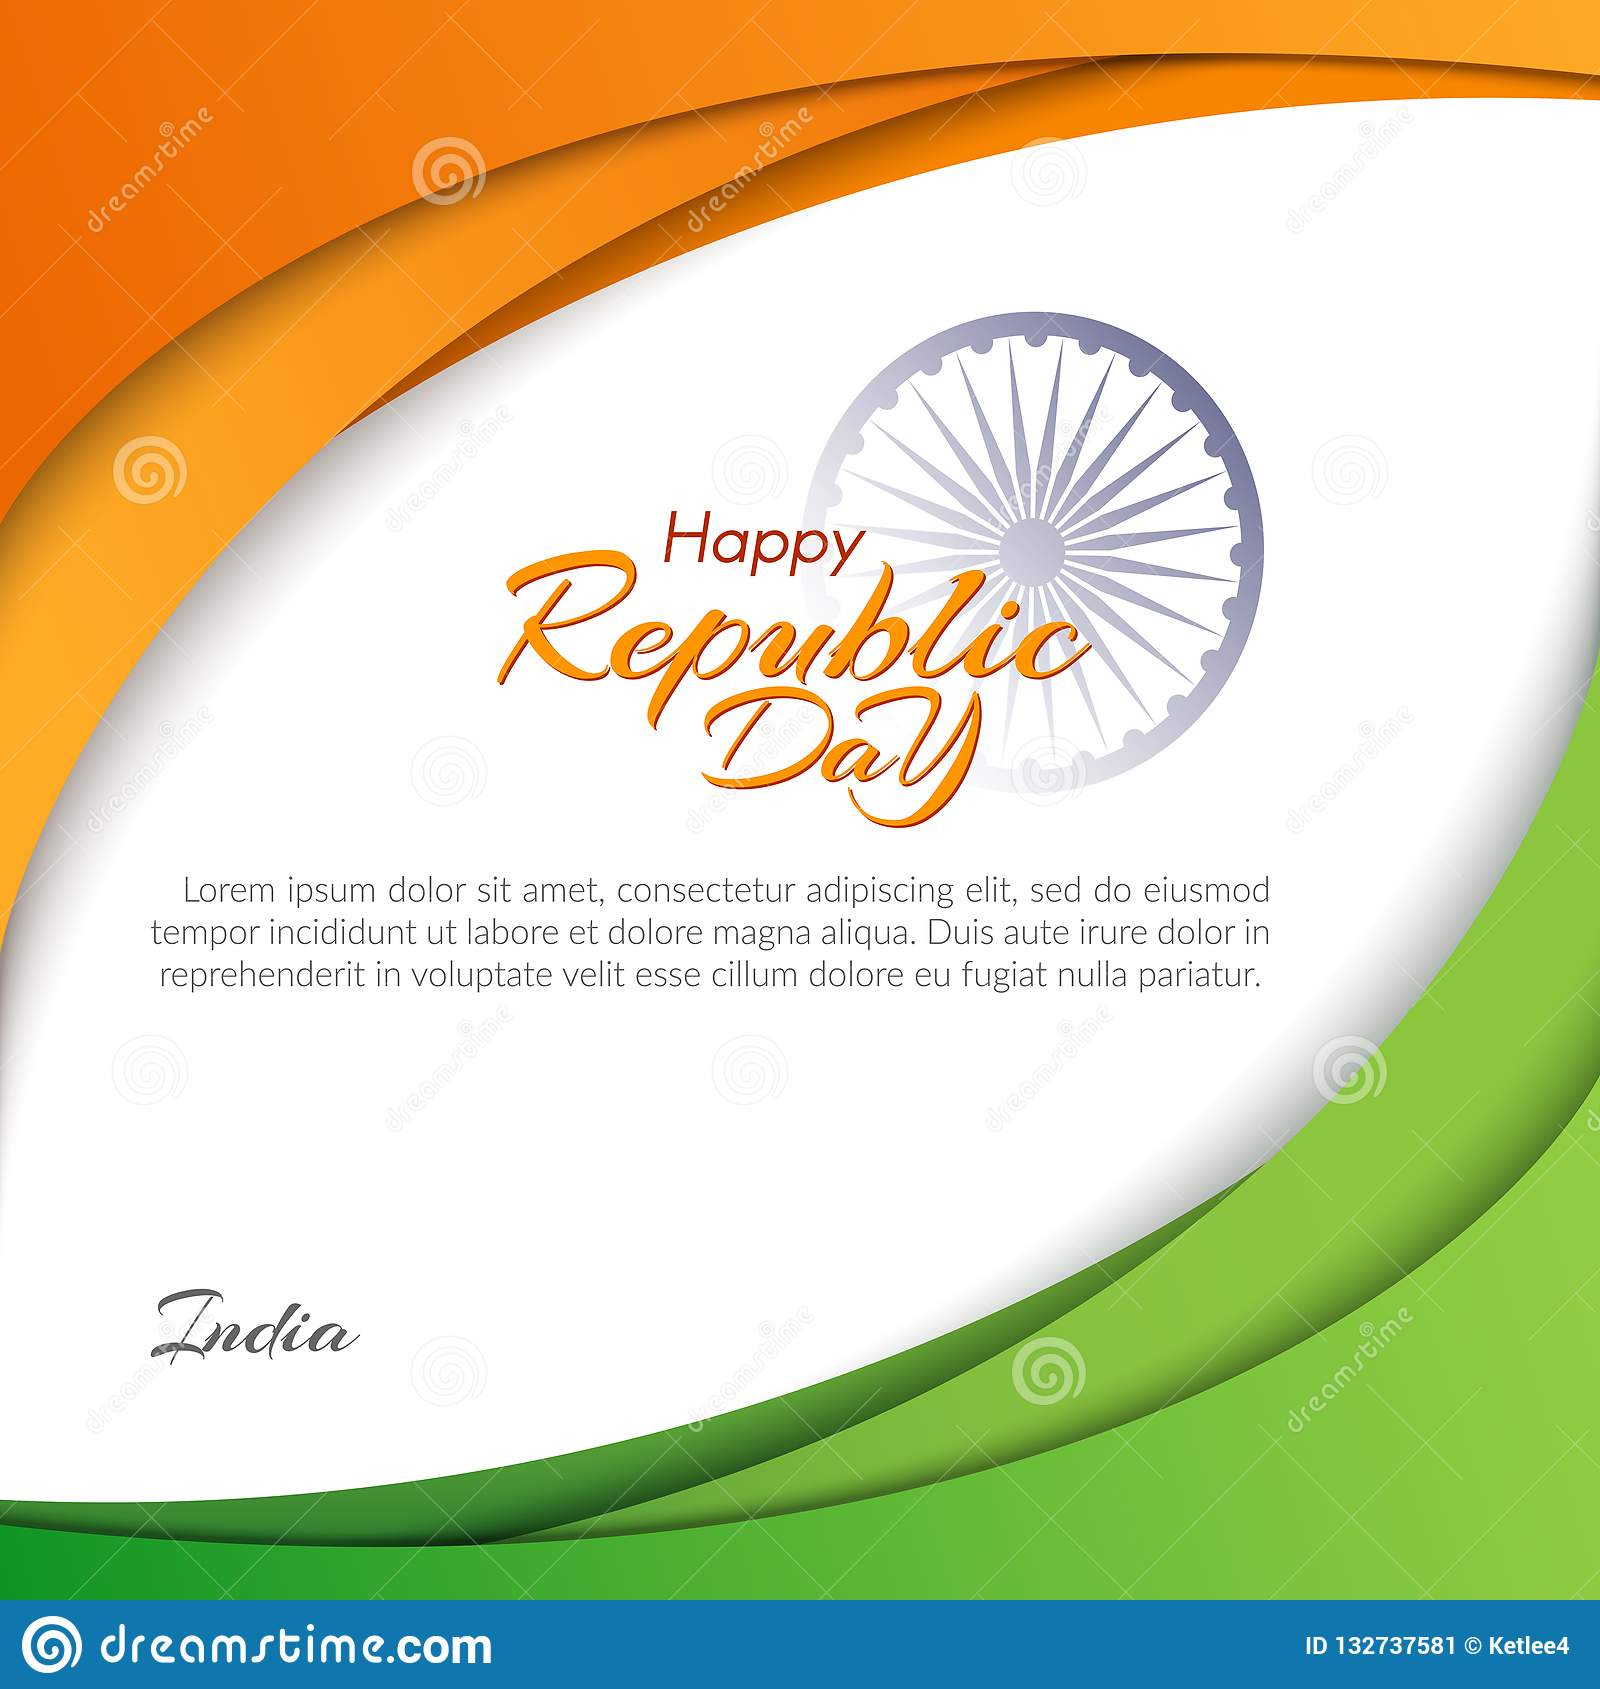 Template With The Text Of The Republic Day In India On